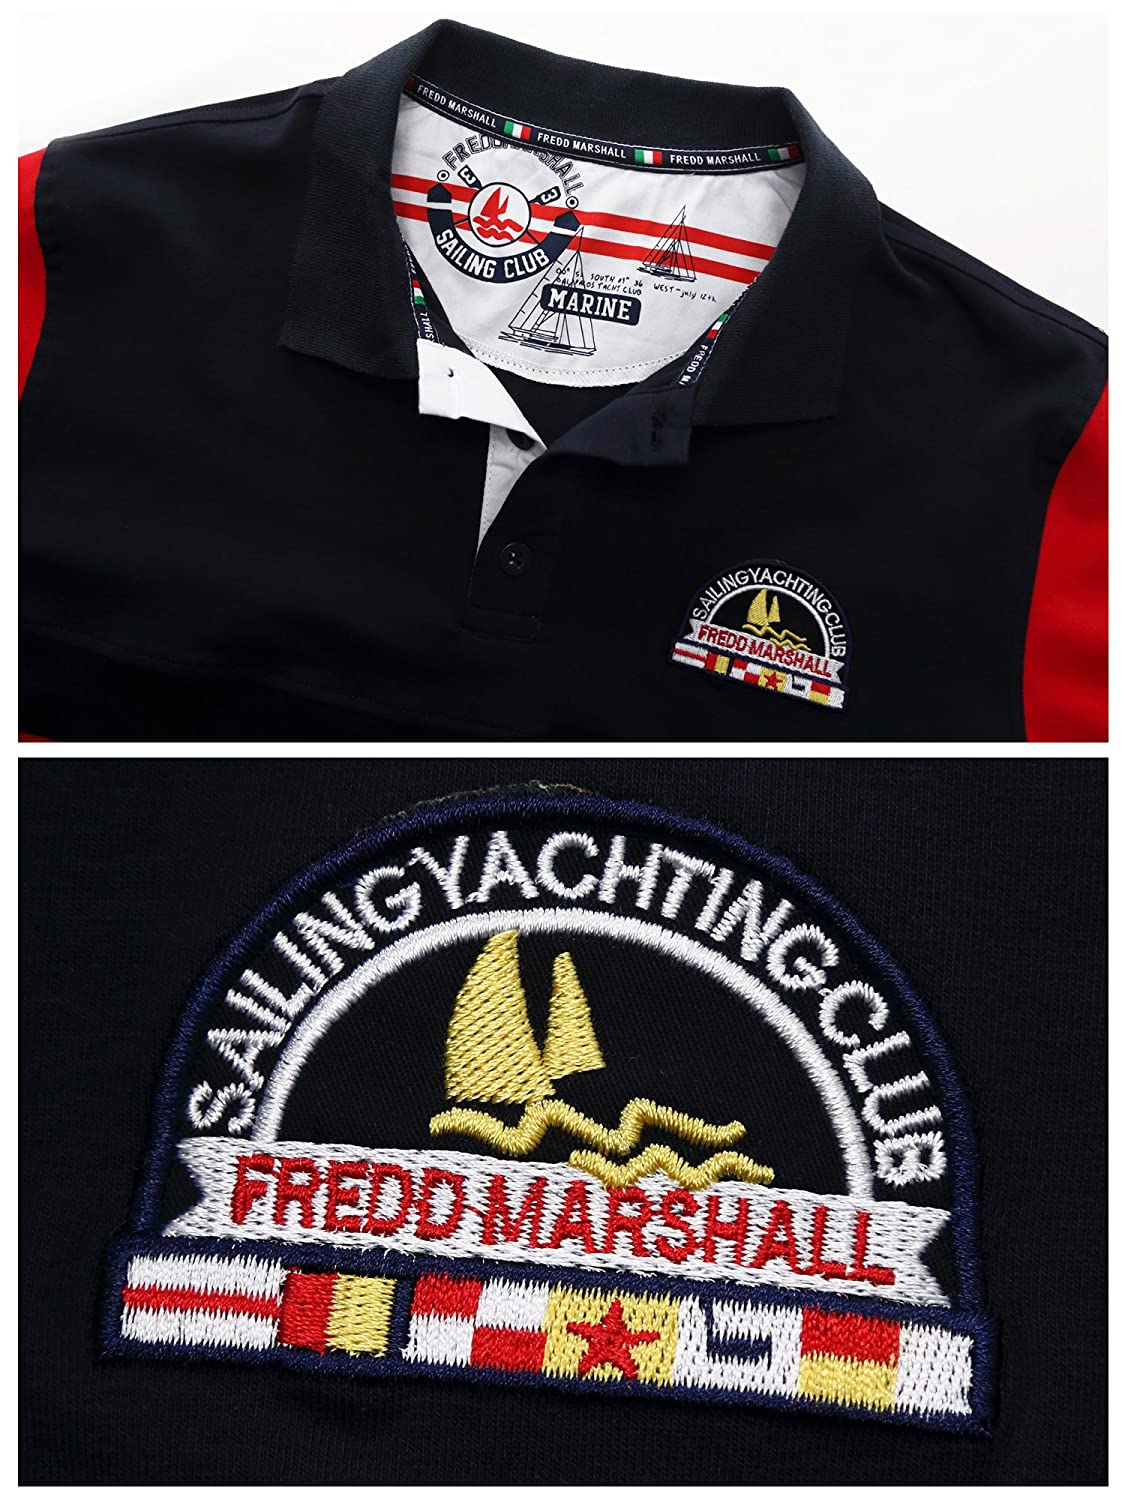 254e5383a Fredd Marshall Men s Short Sleeve Cotton Striped Embroidered Classic Polo  Shirts Golf Tops  Amazon.co.uk  Clothing